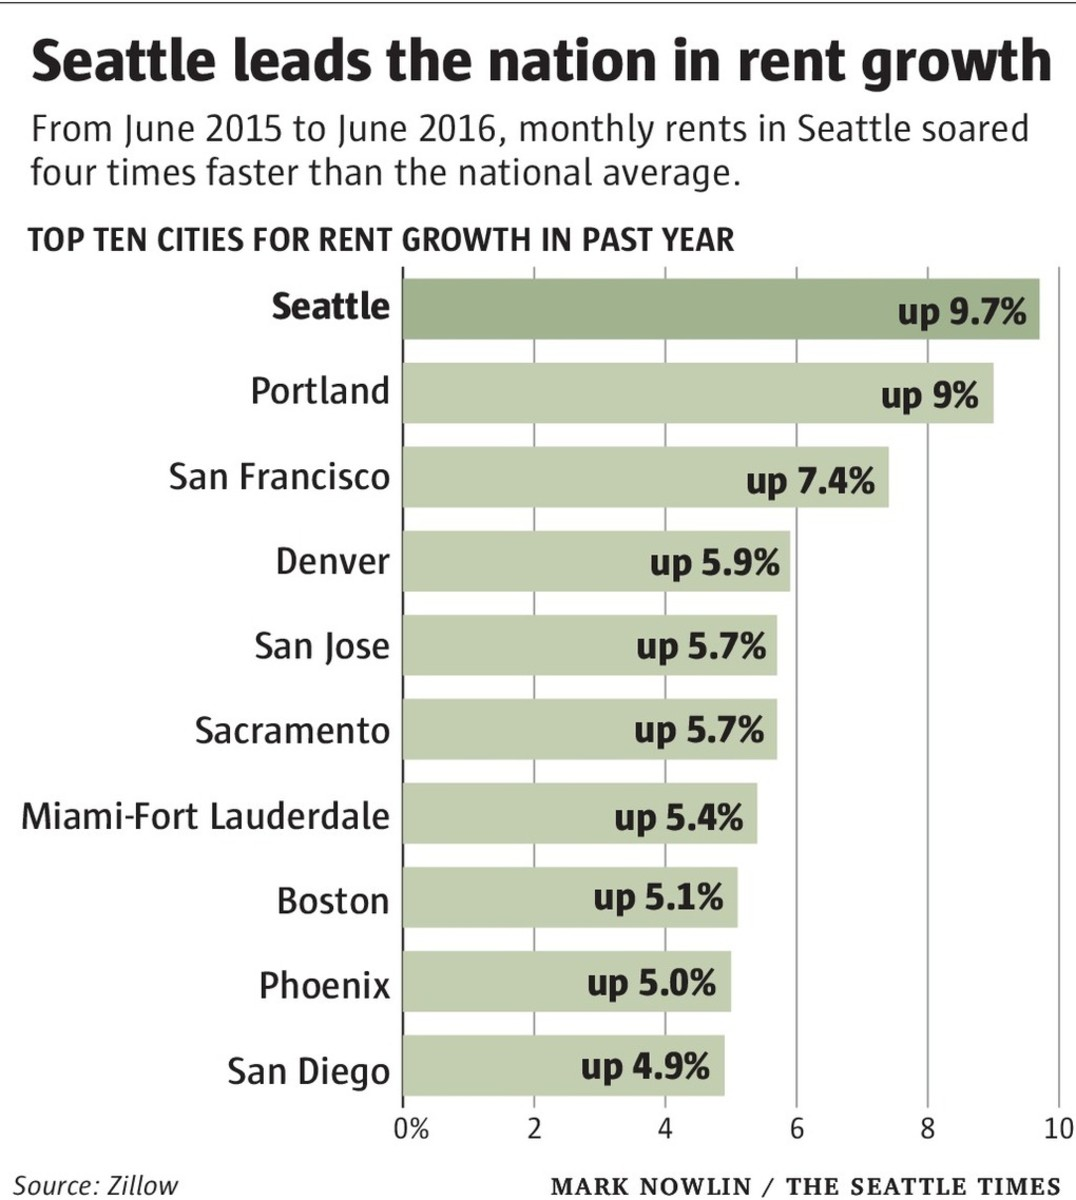 Rents in the Seattle area are rising about four times faster than the national average and have topped $2,000 a month